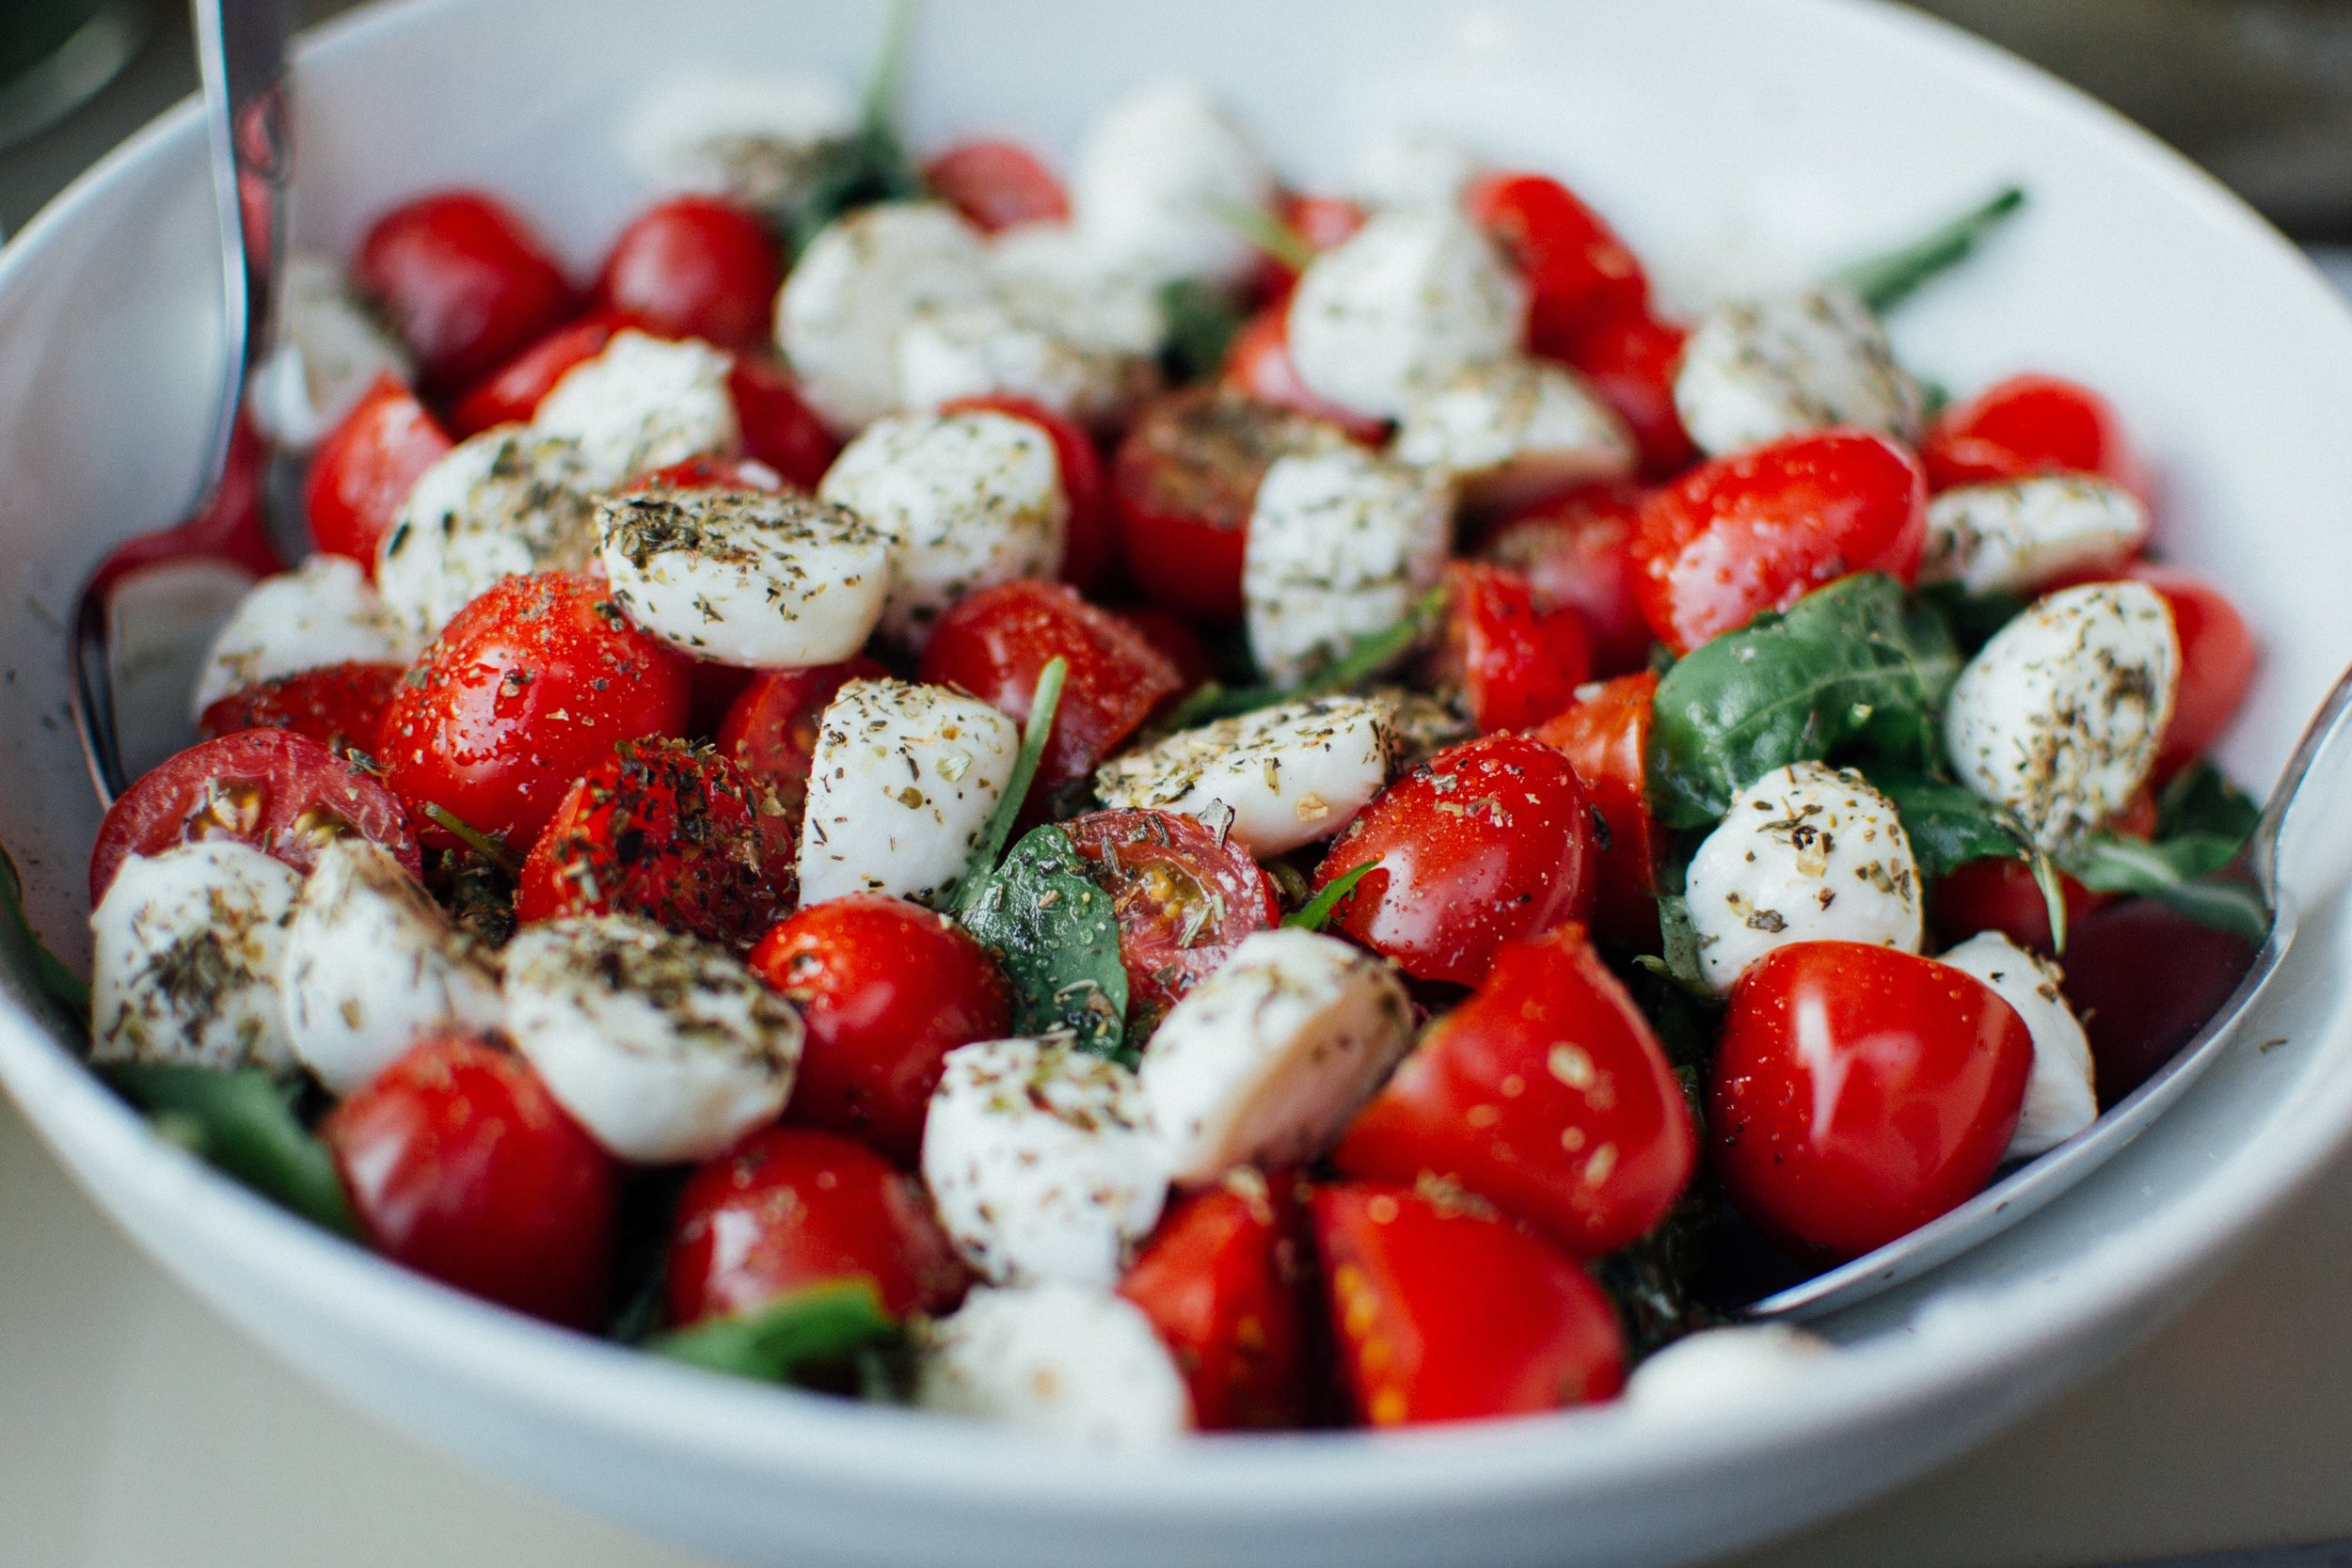 cherry-tomatoes-delicious-food-7765.jpg